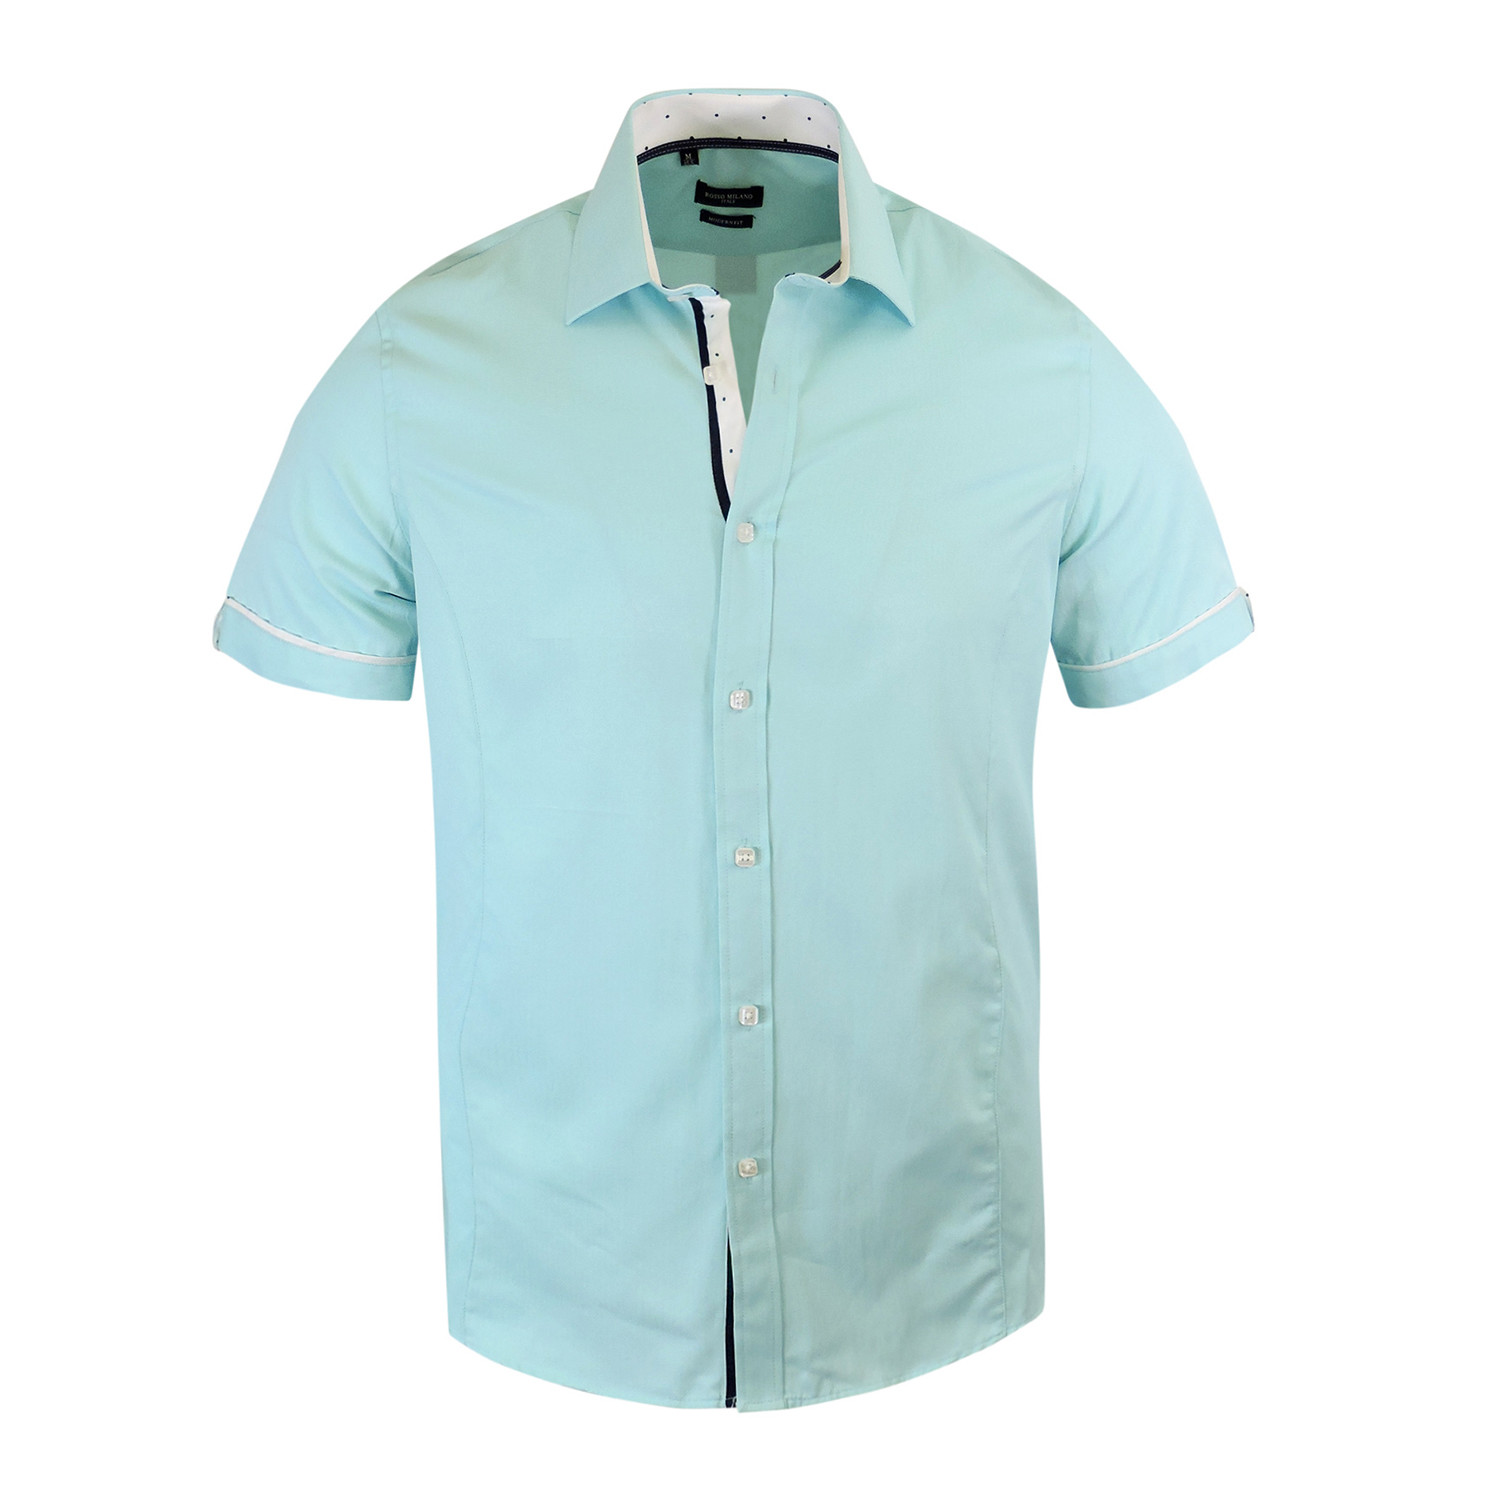 Andrea Modern Fit Short Sleeve Dress Shirt Mint M Tr Premium